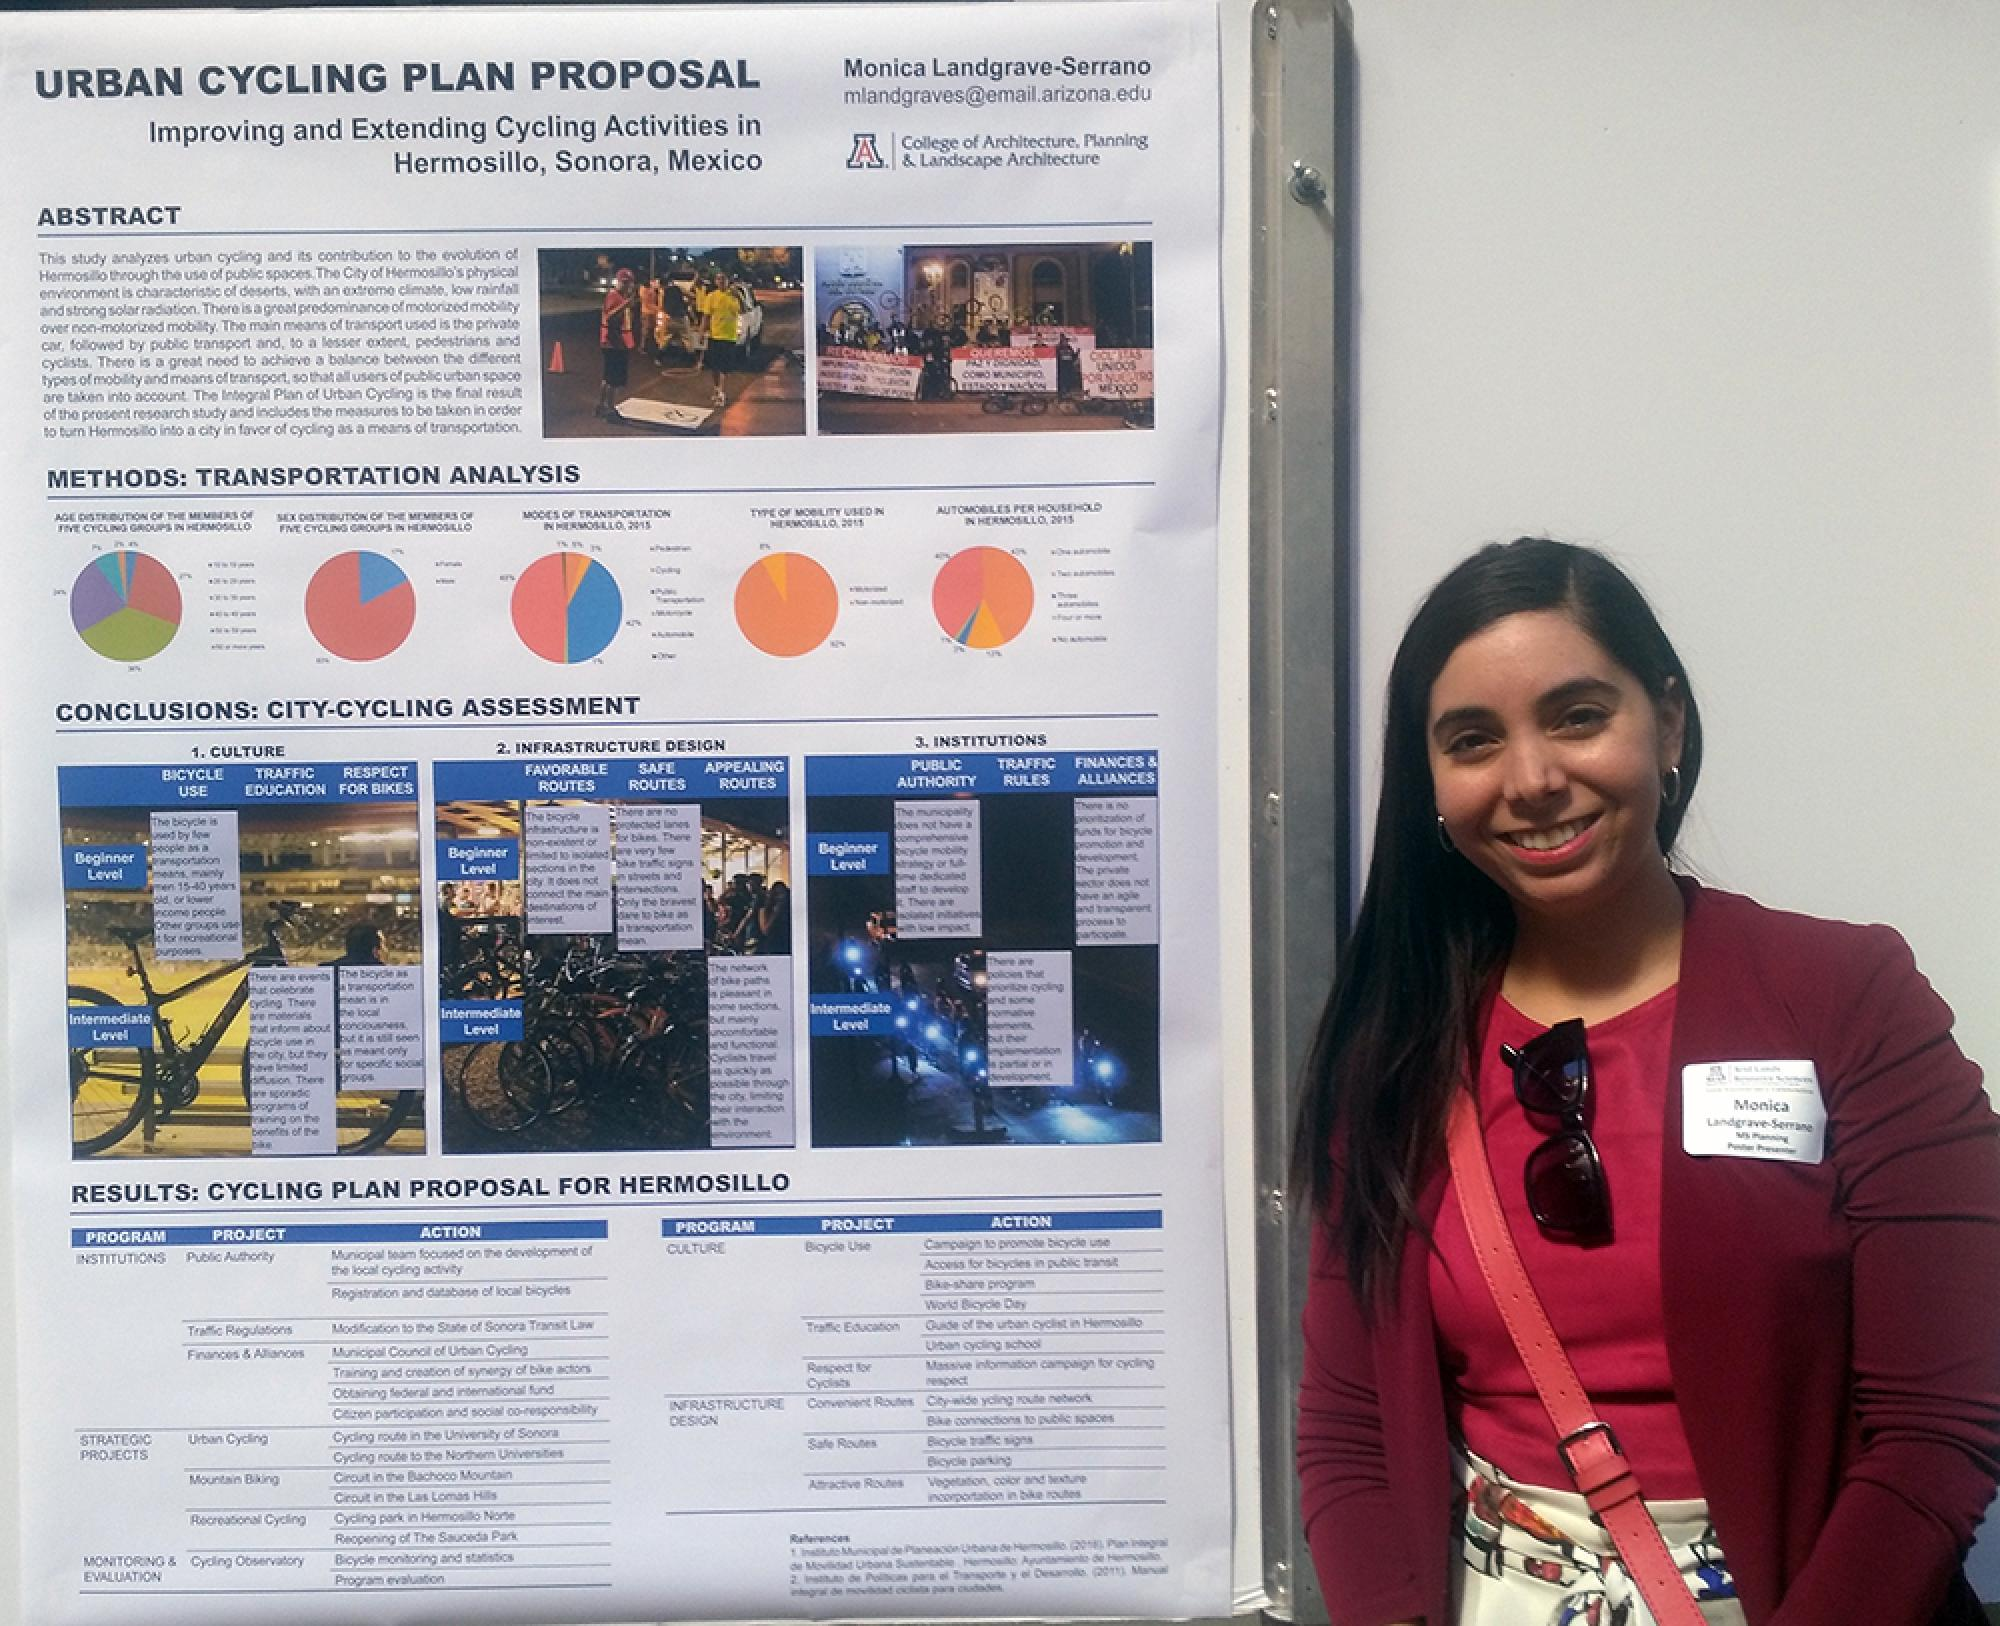 Landgrave-Serrano's experiences as a child in Hermosillo, Sonora, Mexico, prompted research she presented during a poster session at the UA.